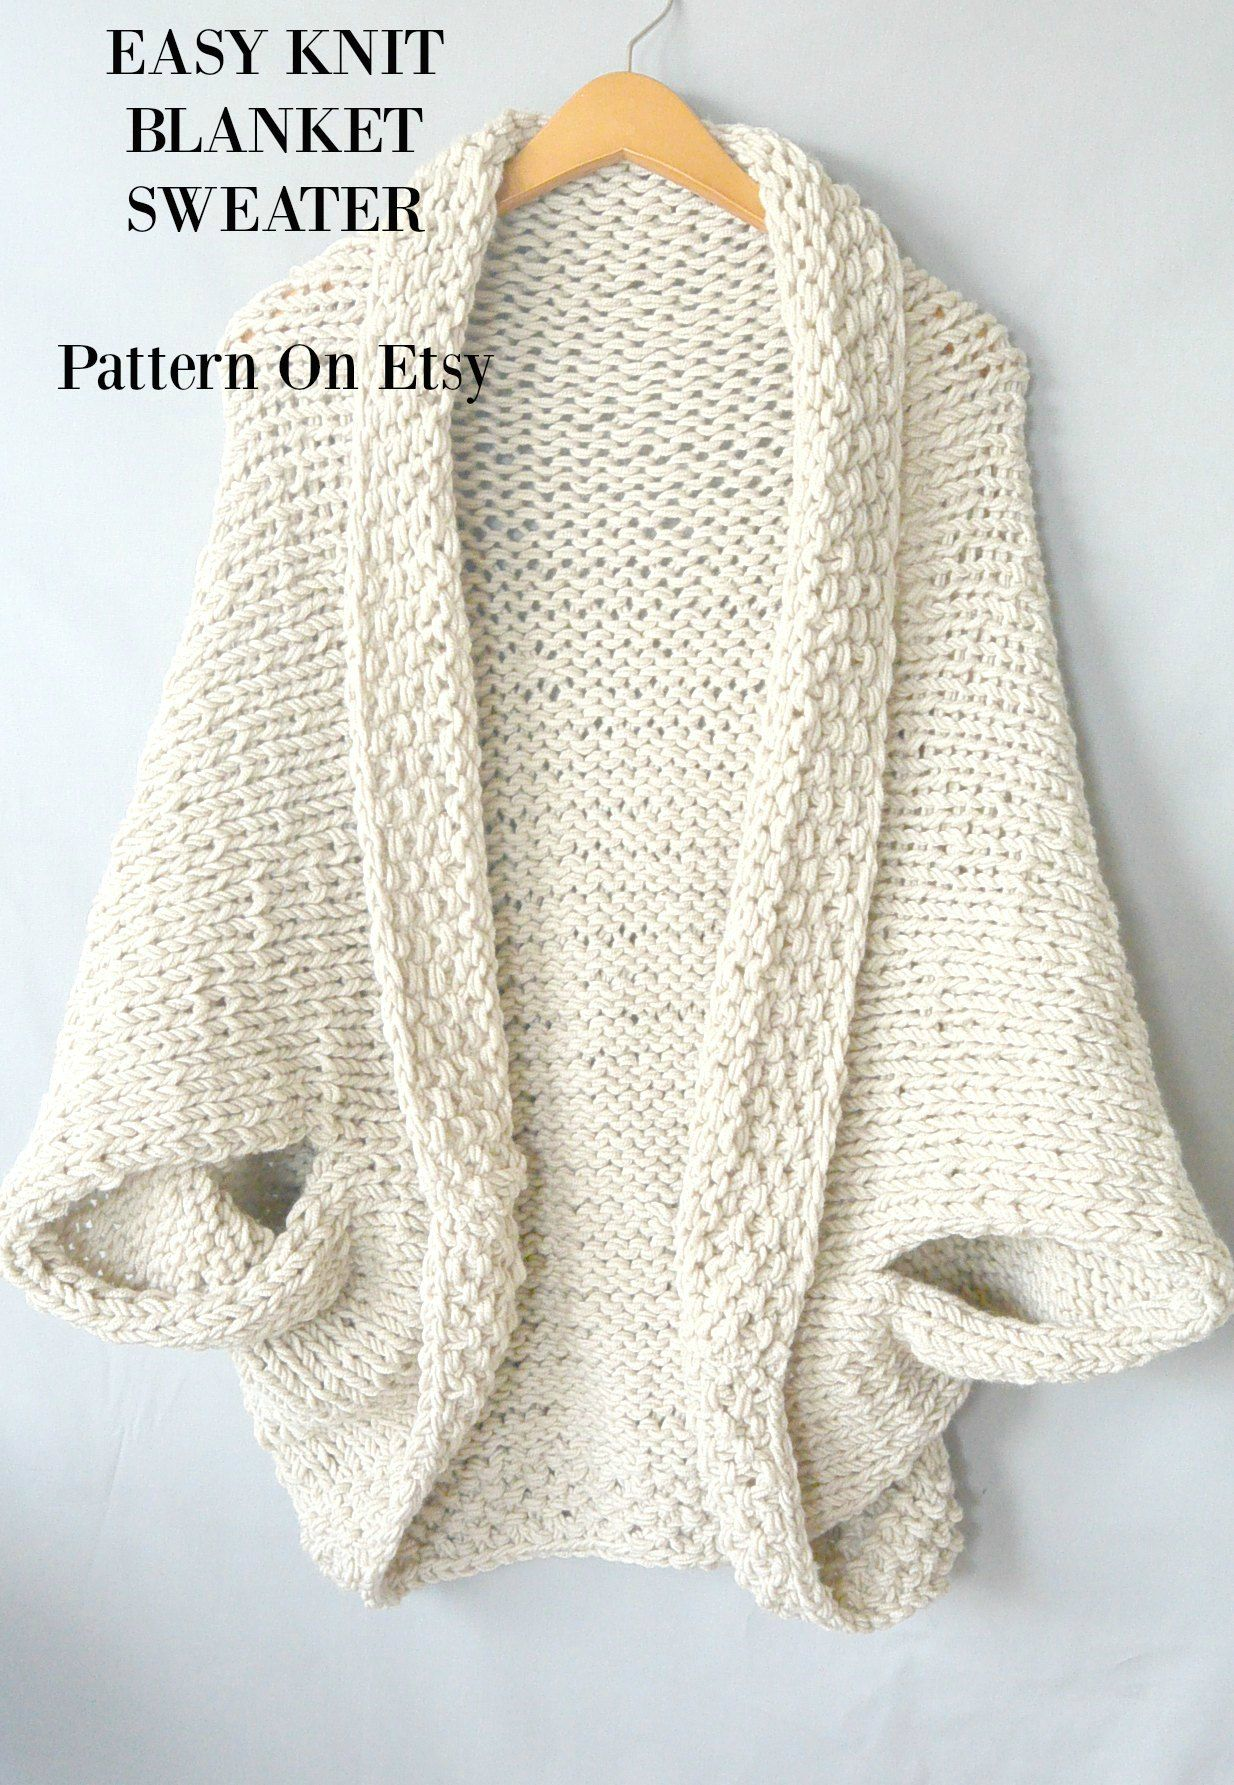 etsy-easy-knit-blanket-sweater-lb-5 | Patterns | Pinterest | Ovillos